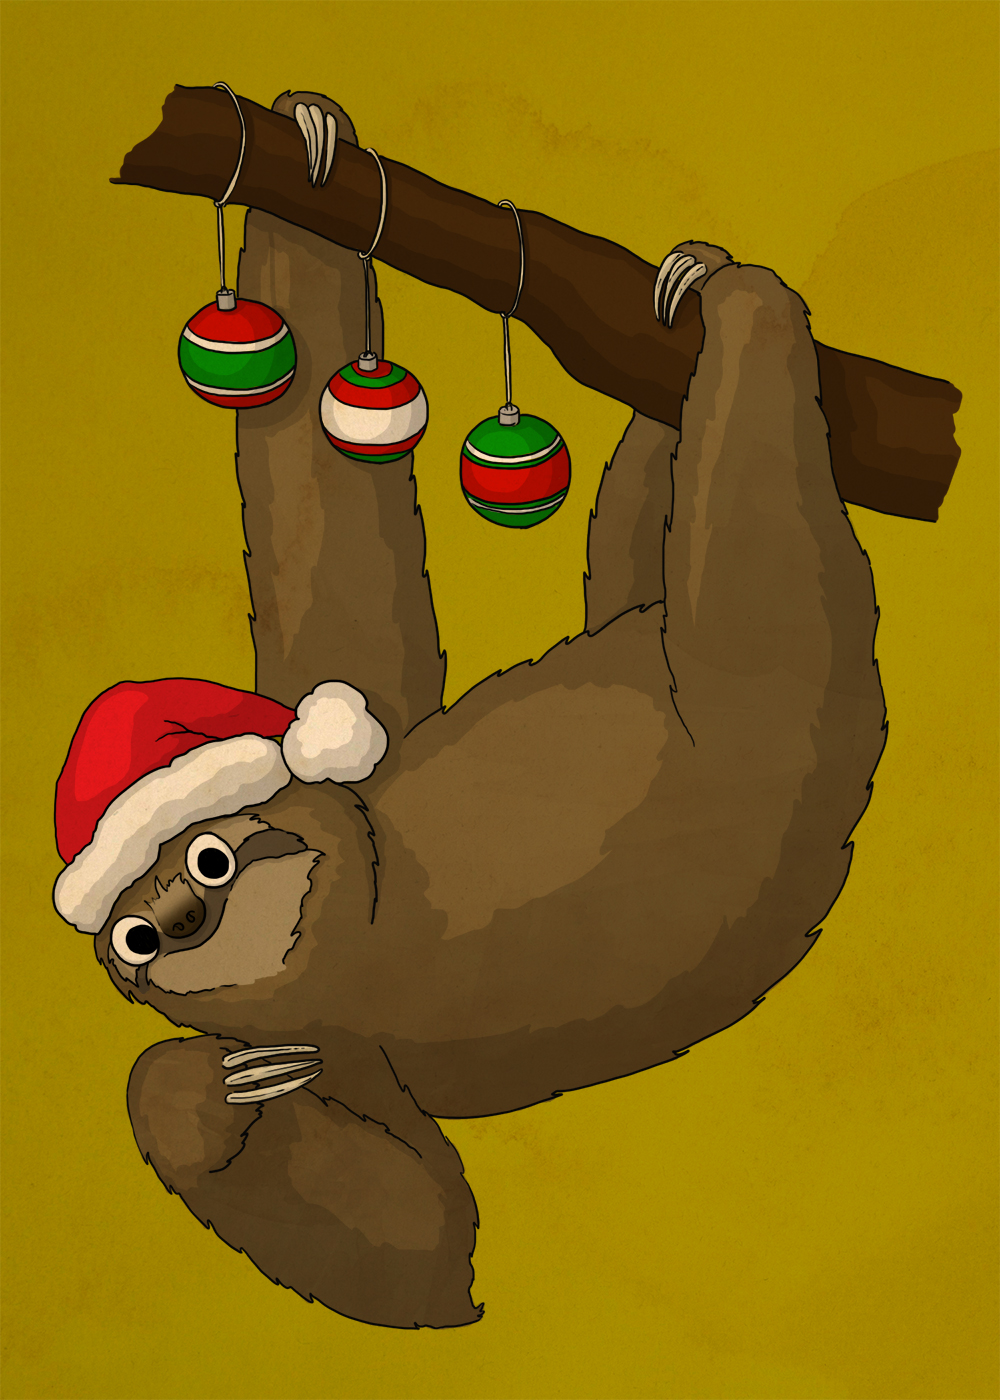 I guess it's hanging upside-down that makes the sloths so happy?